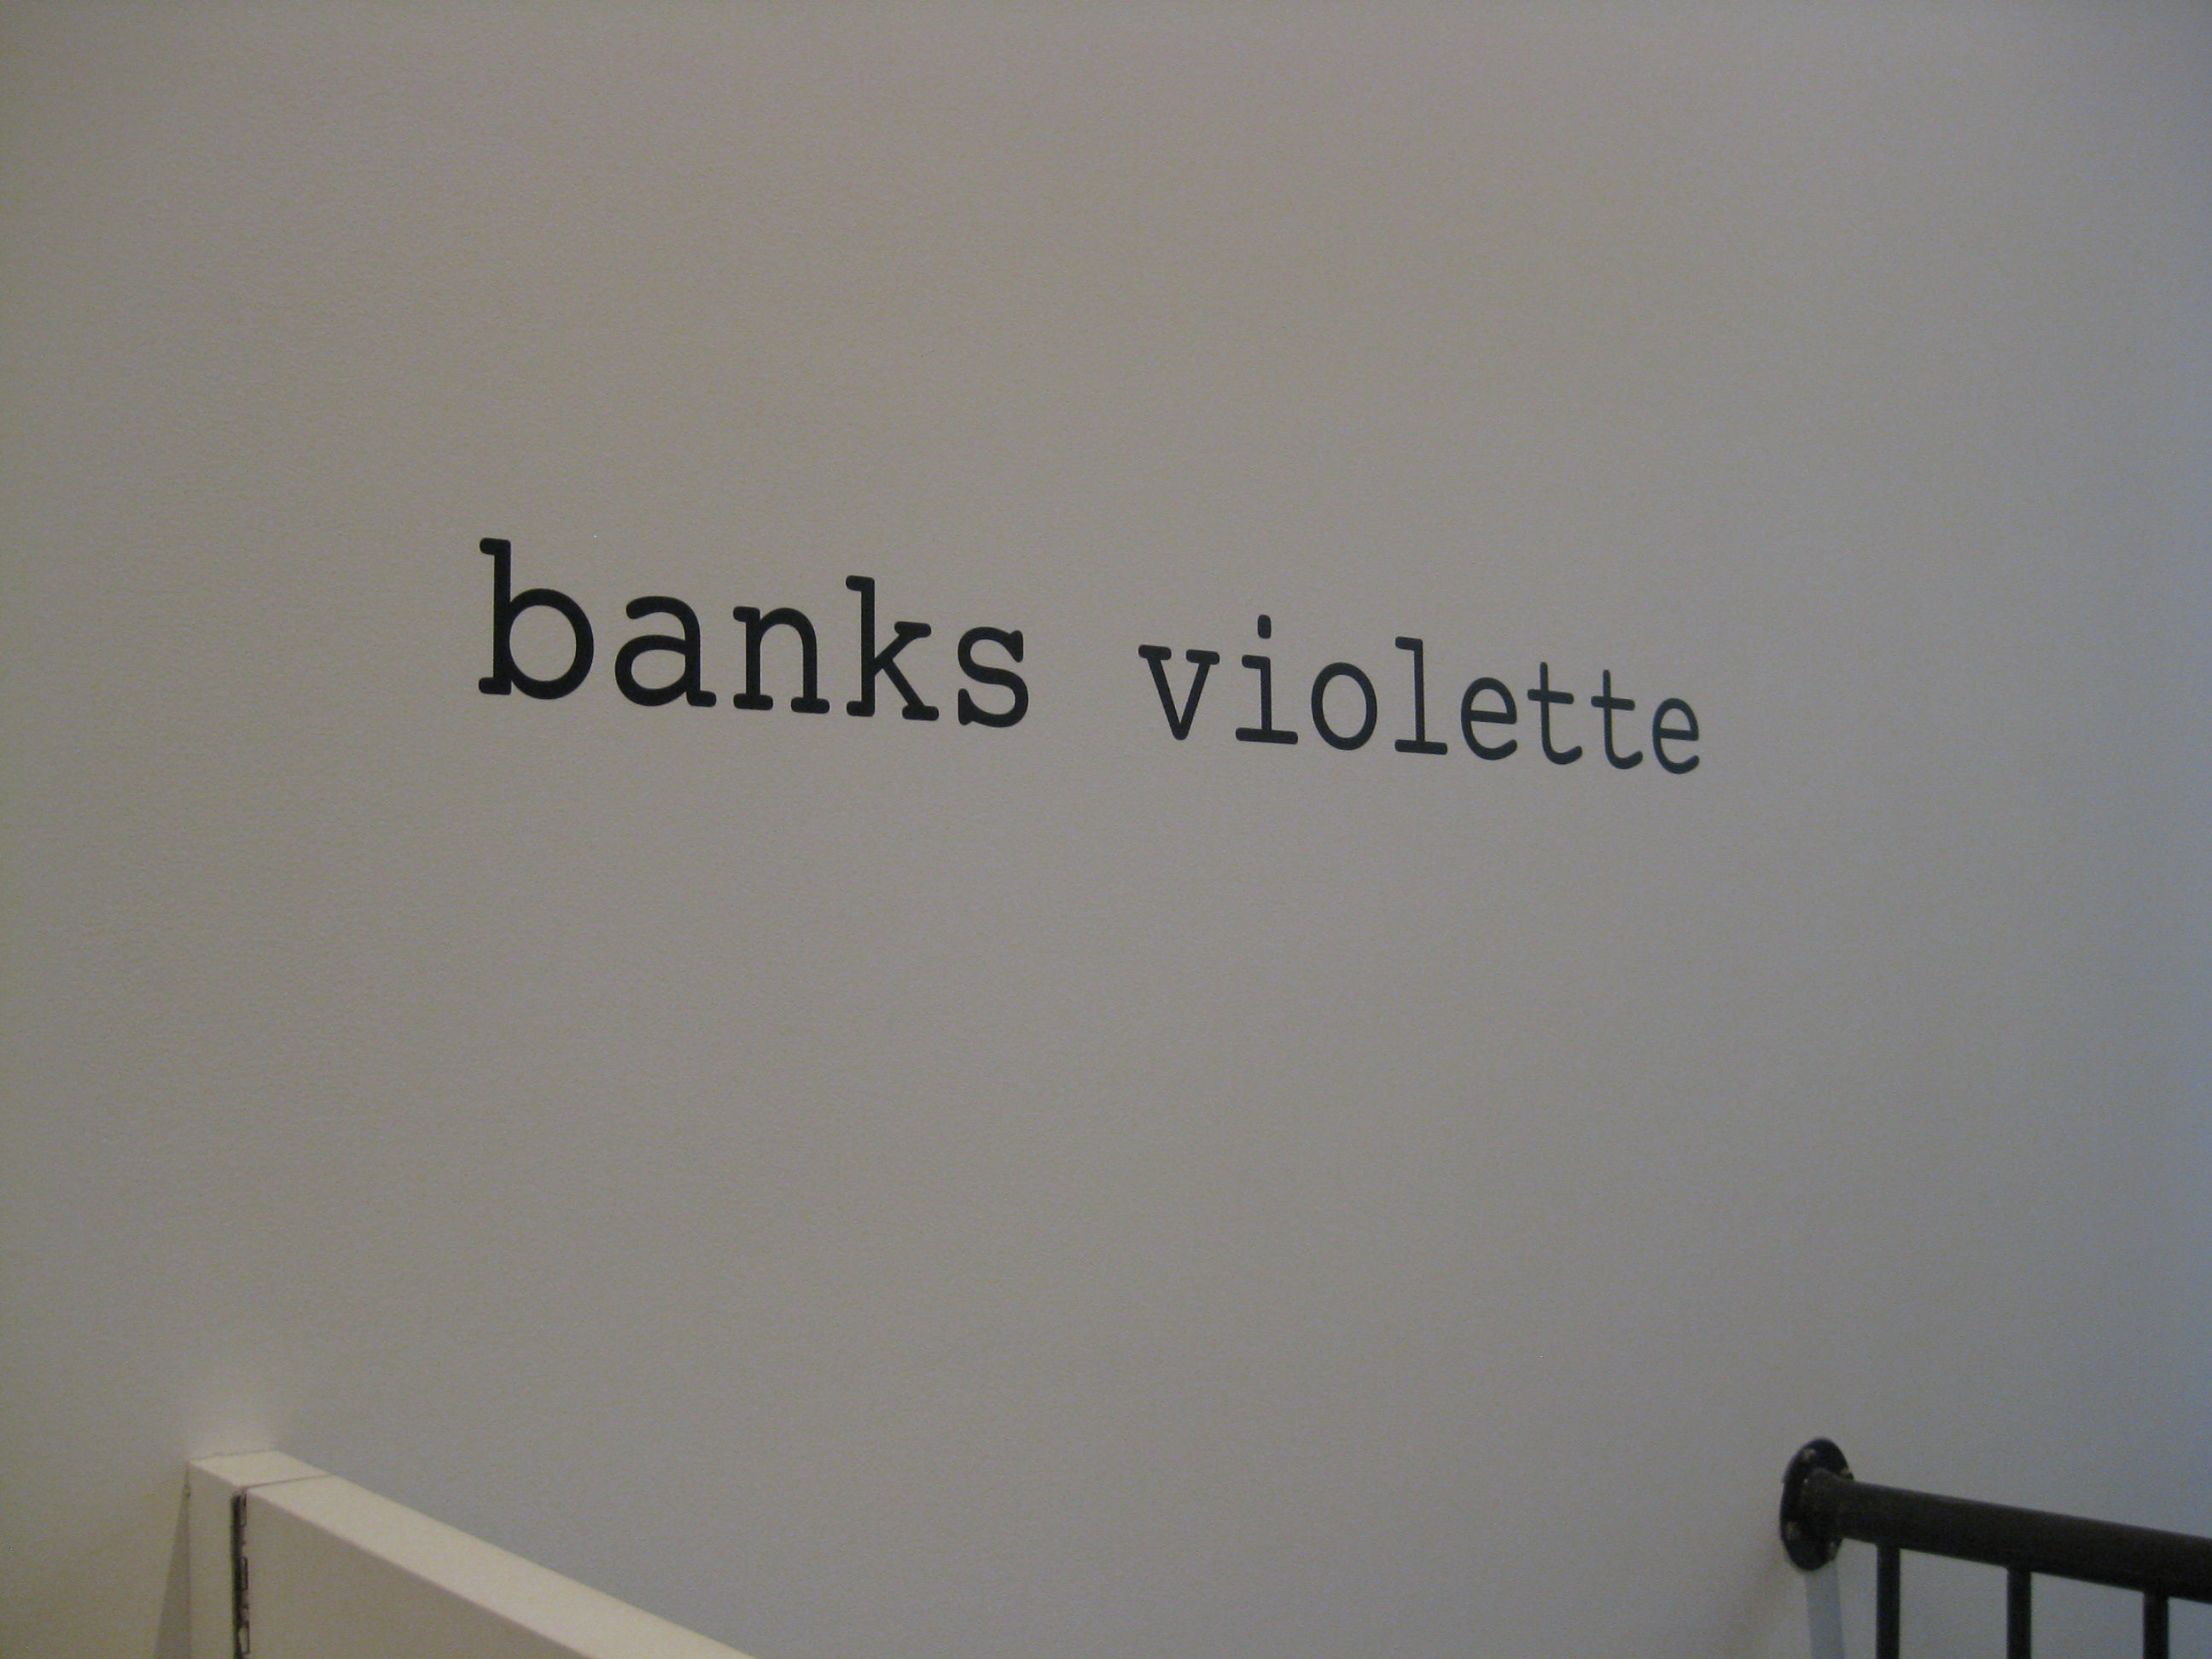 Trend Opening Banks Violette us ucNot Yet Titled ud at Team Gallery Photo by Art Observed